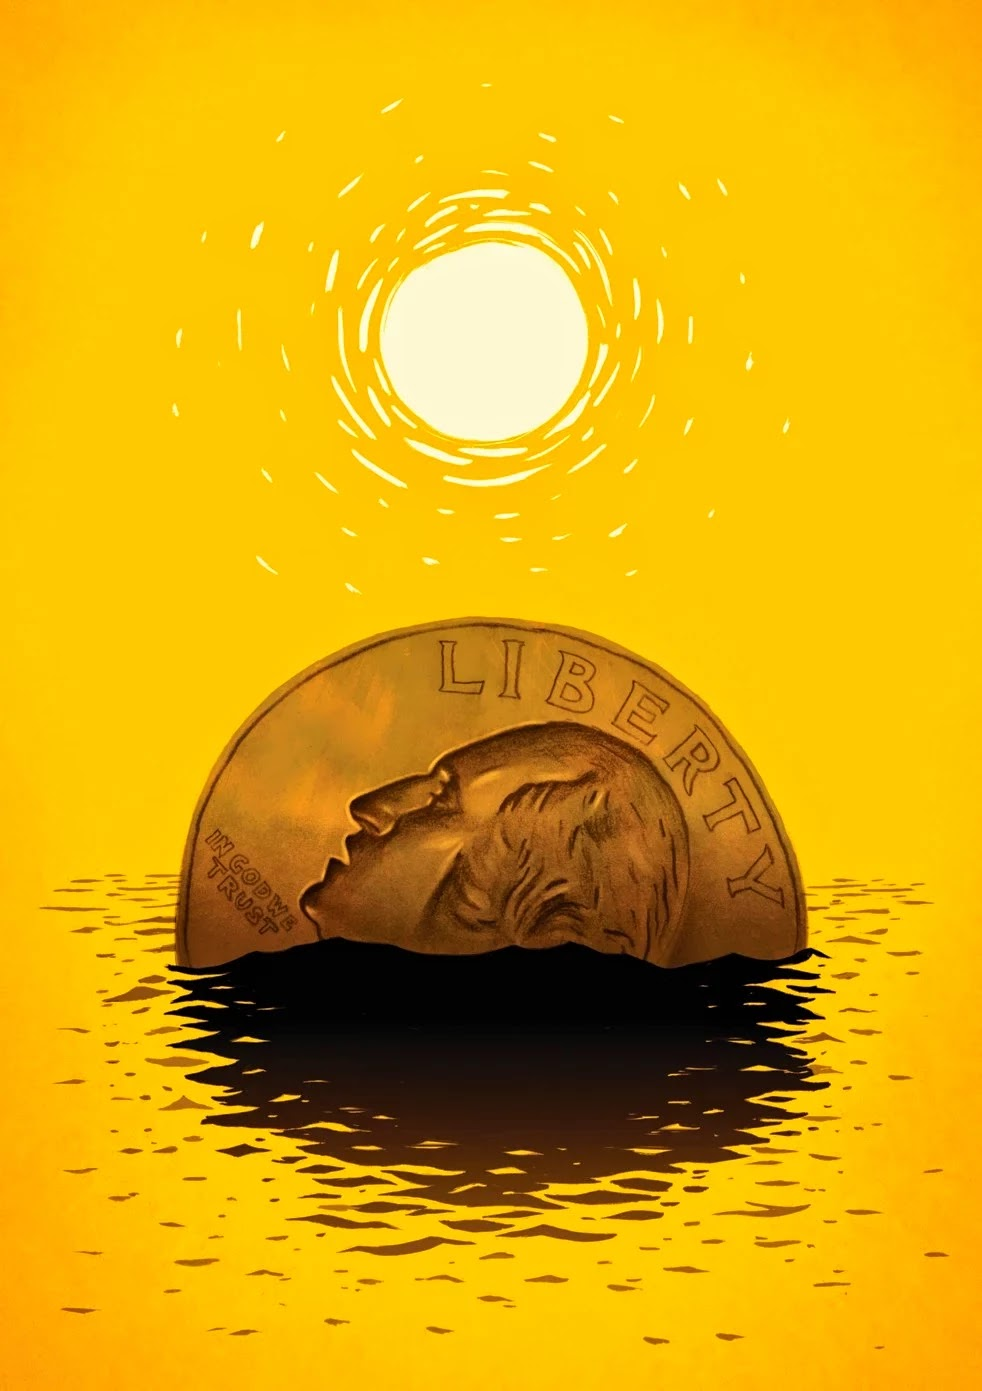 Sinking coin (Credit: Skip Sterling for The Washington Post) Click to enlarge.